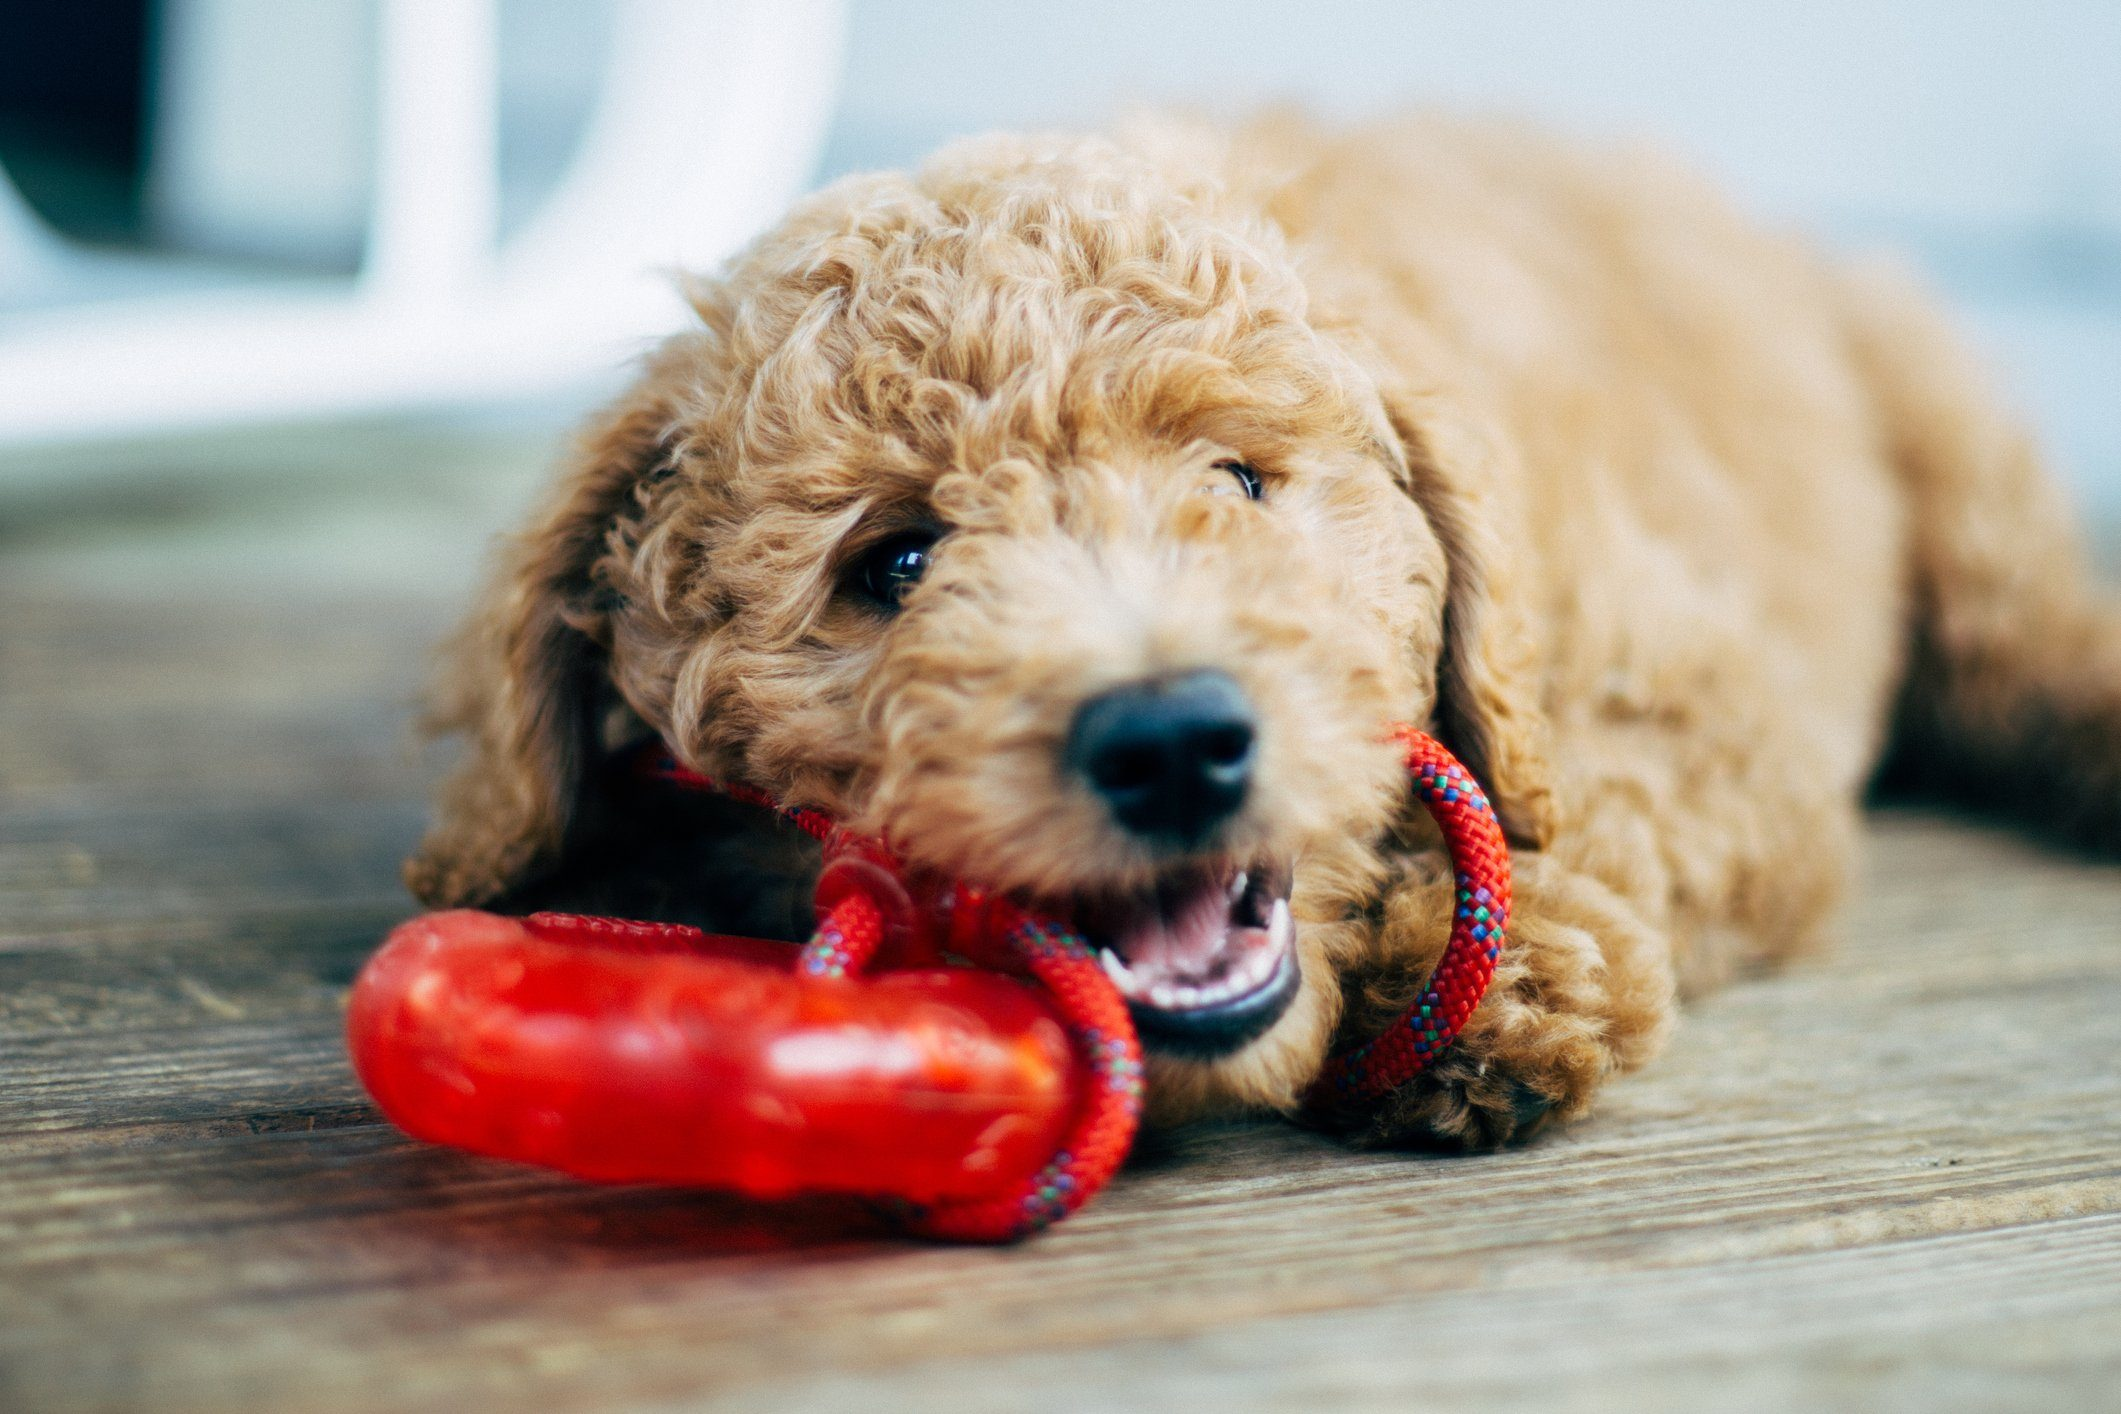 Close-Up Of Dog With Red Toy At Home